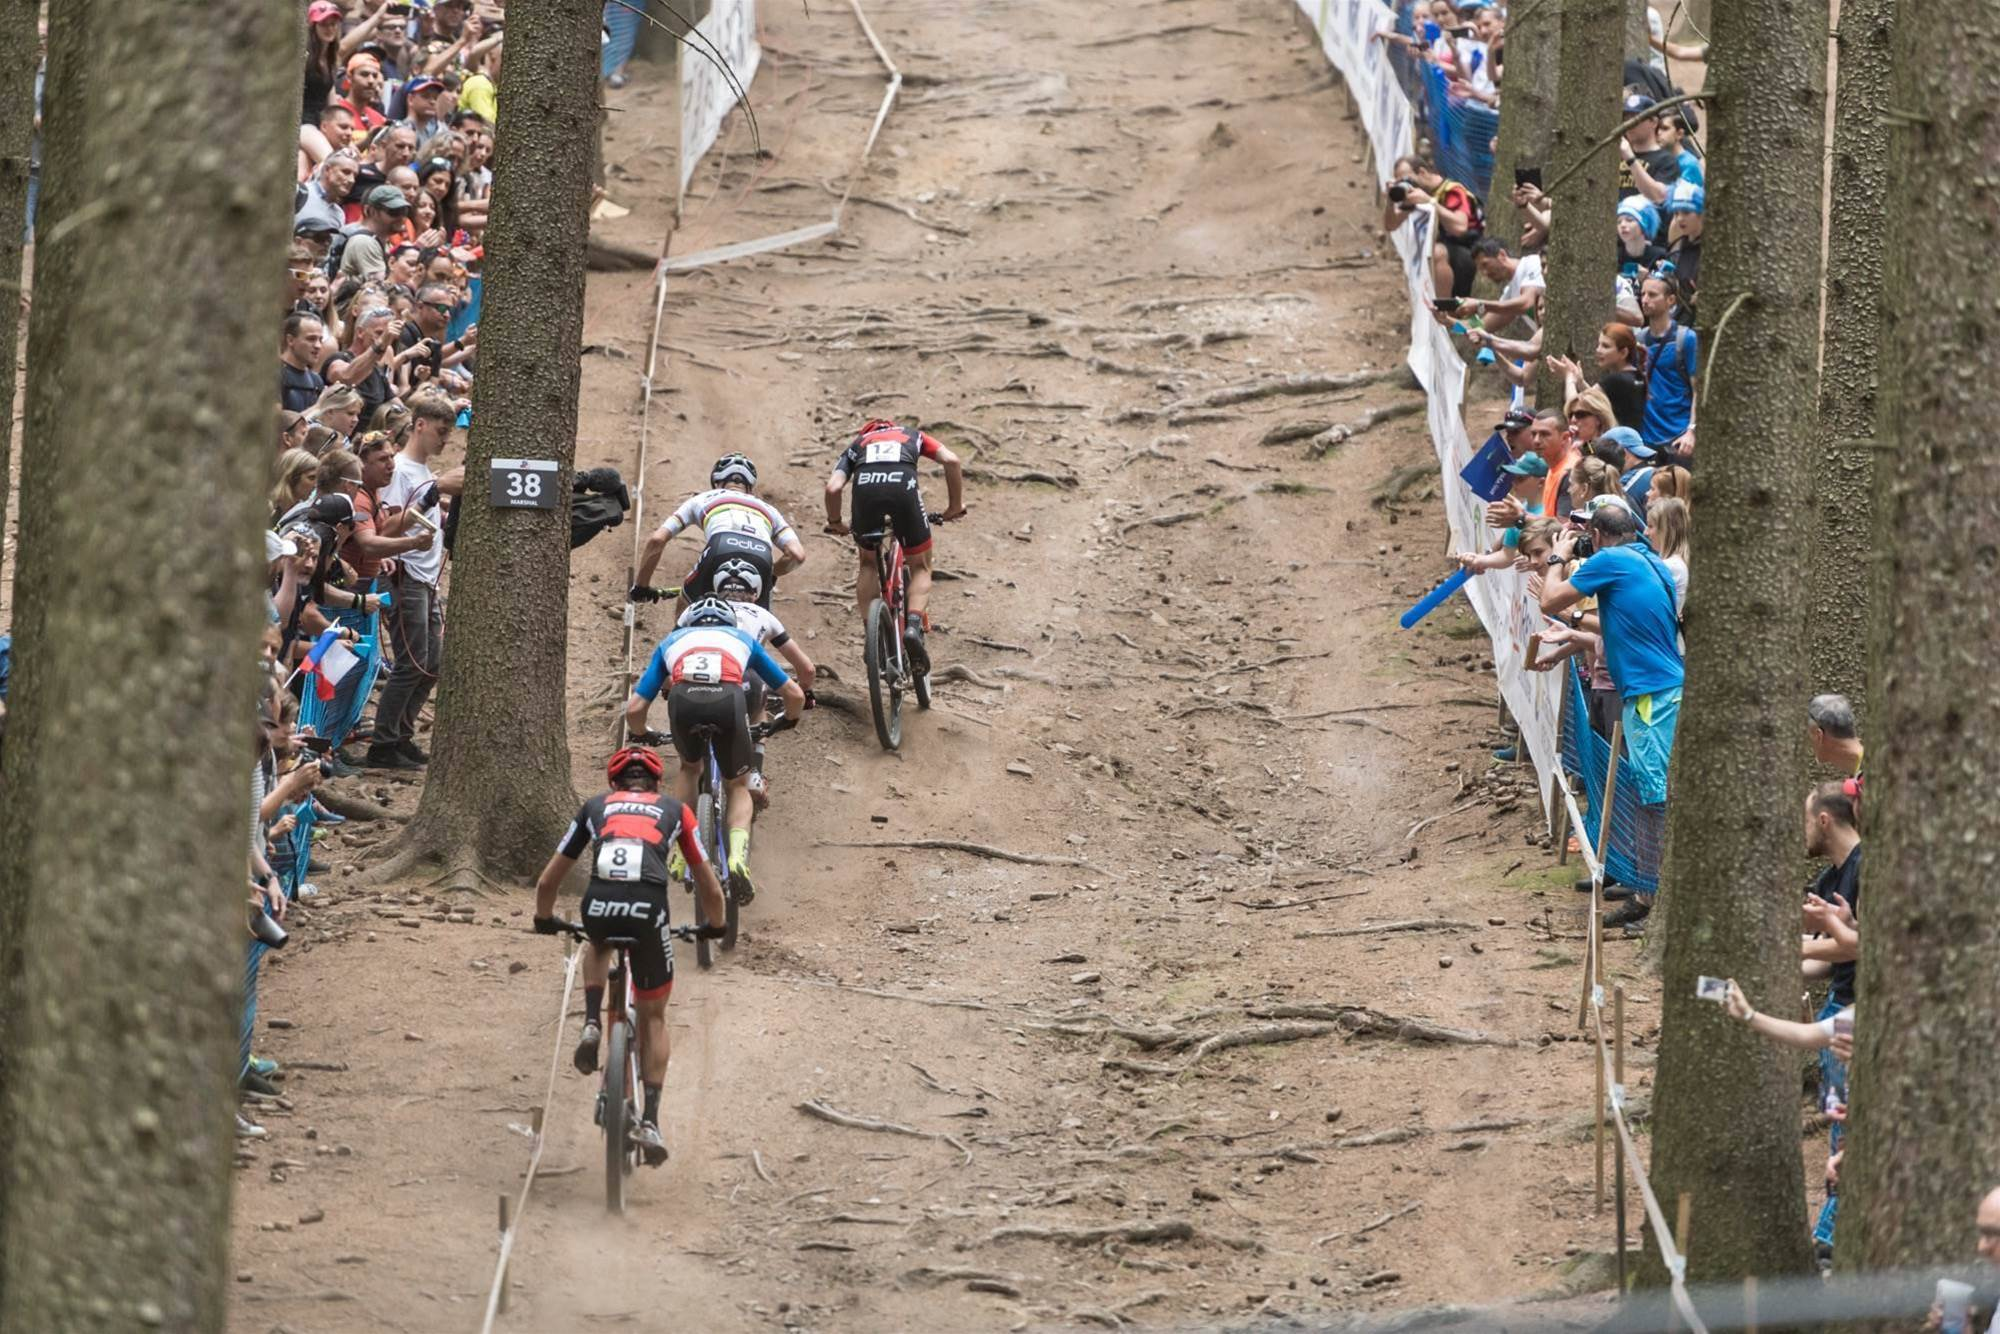 Langvad and Schurter on top in Nove Mesto